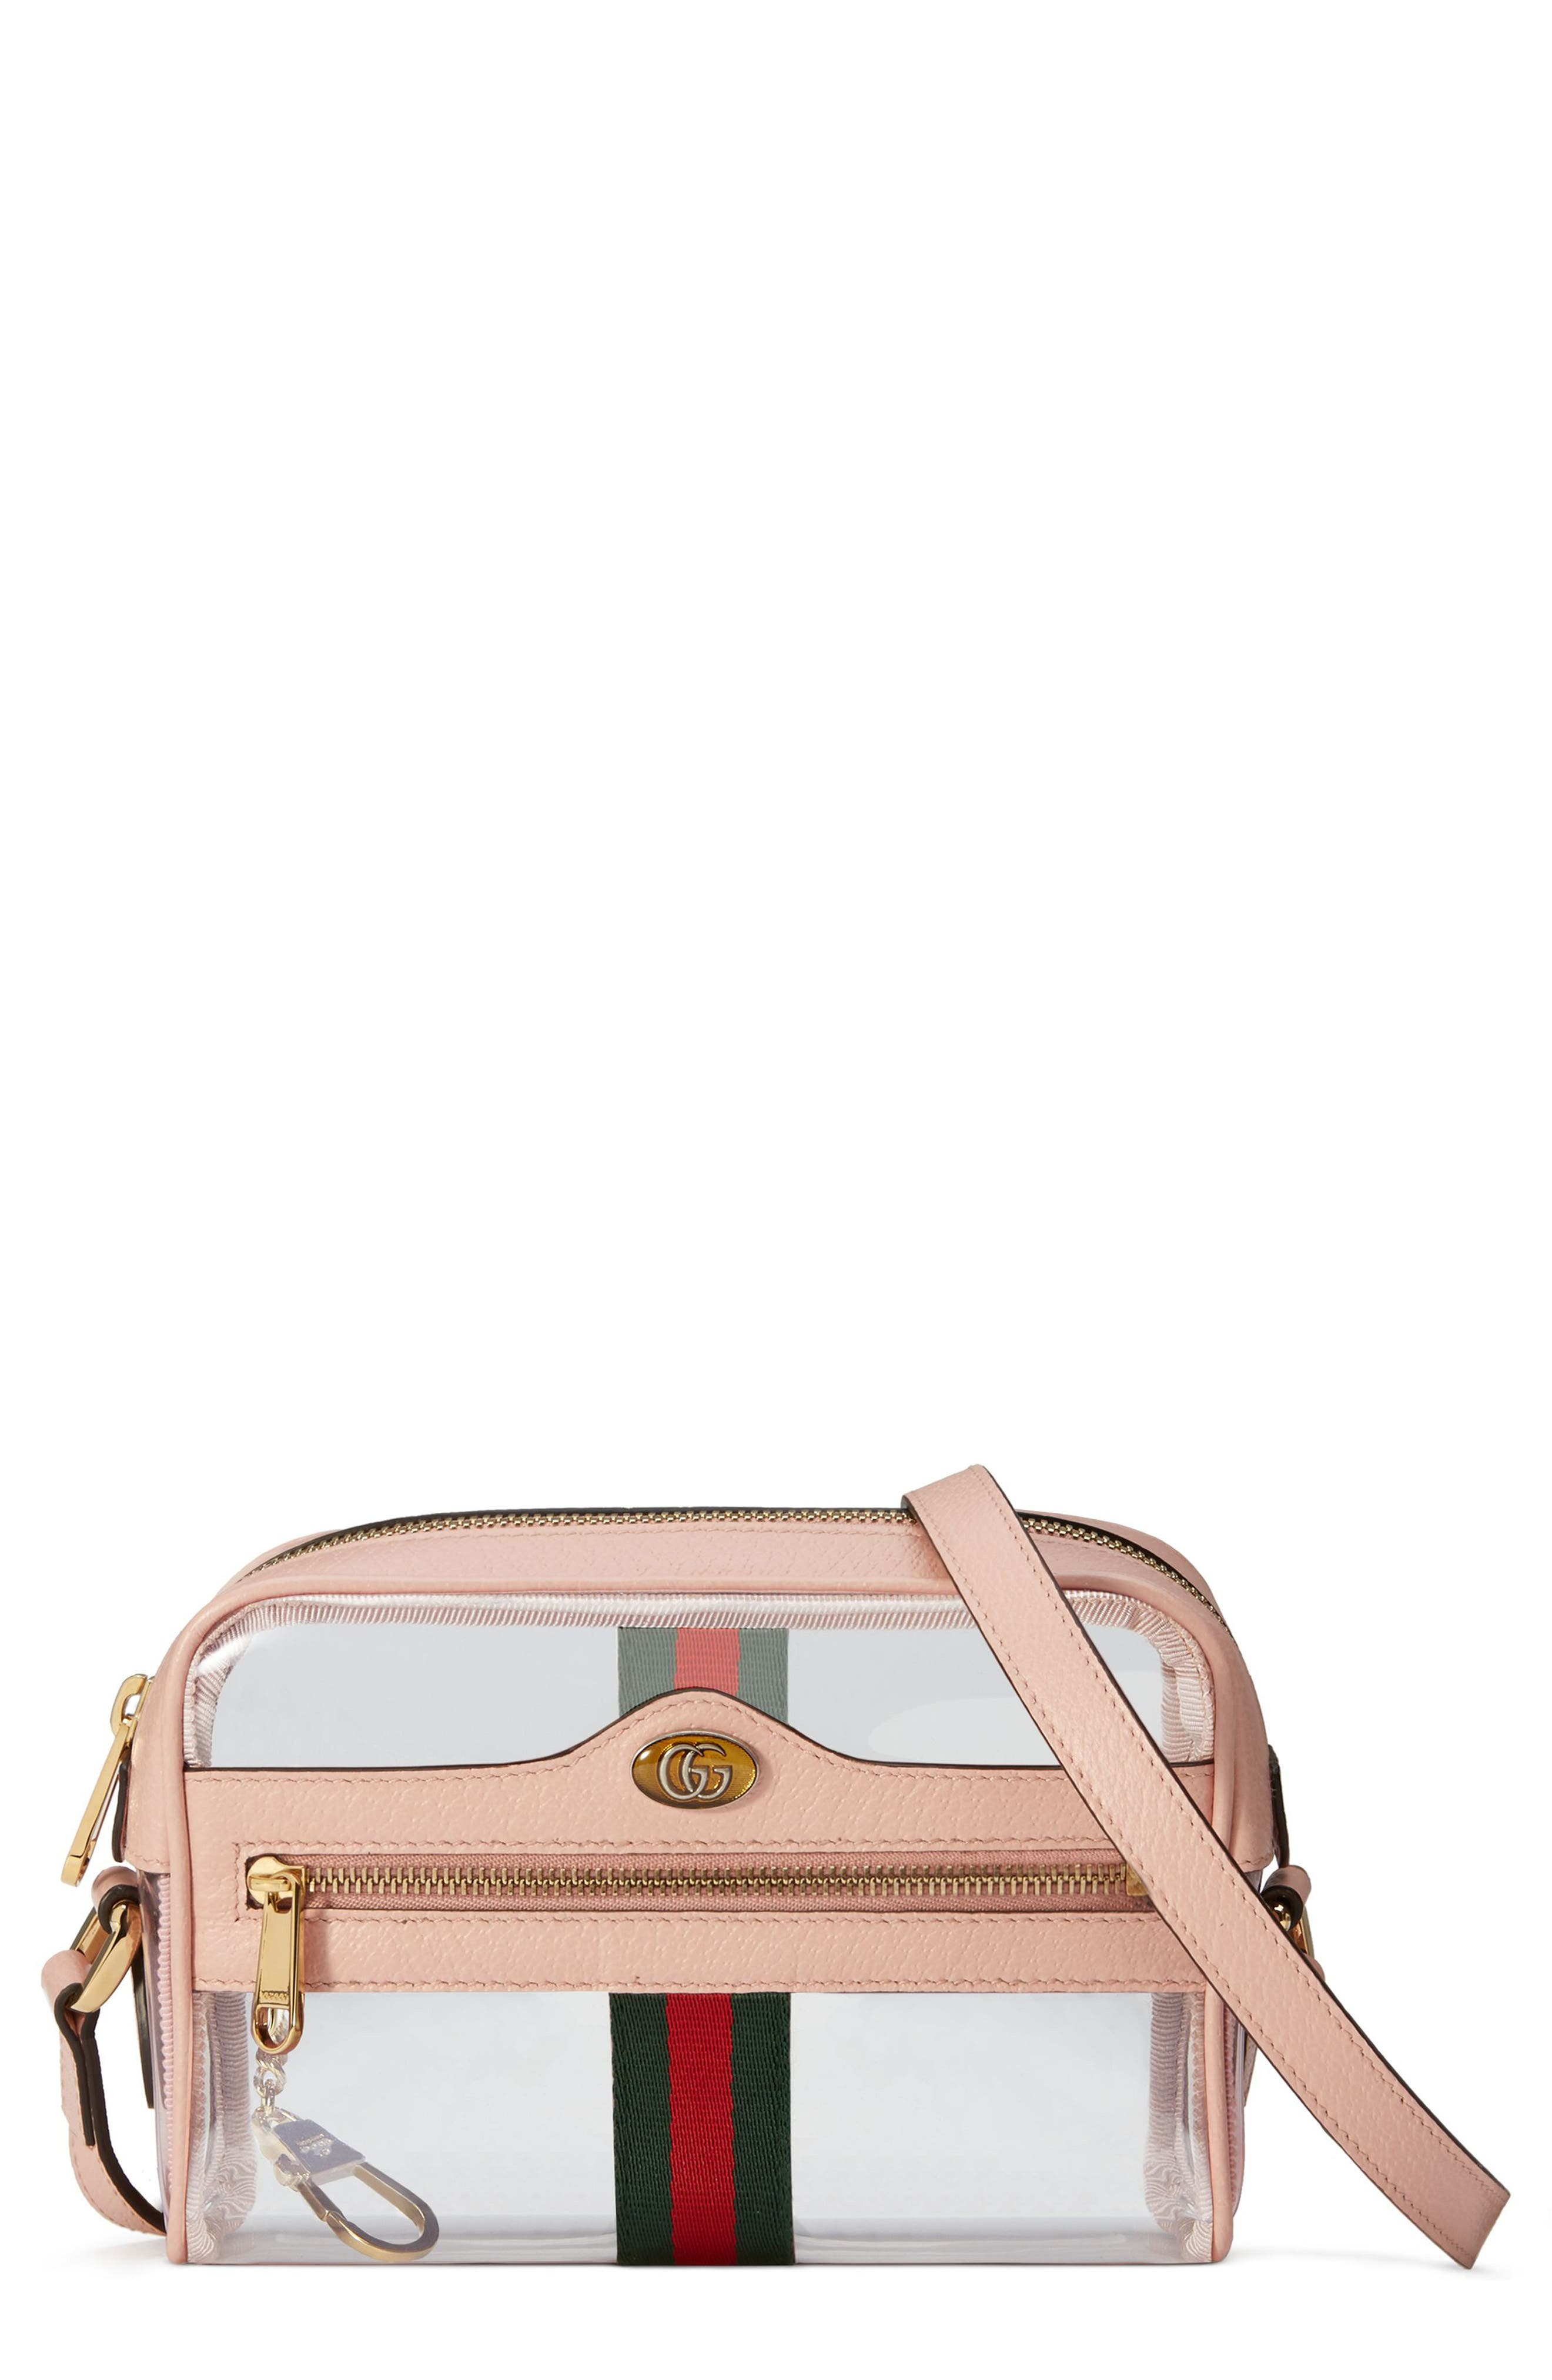 Mini Ophidia Transparent Convertible Bag,                             Main thumbnail 1, color,                             PINK/ PERFECT PINK/ VERT RED